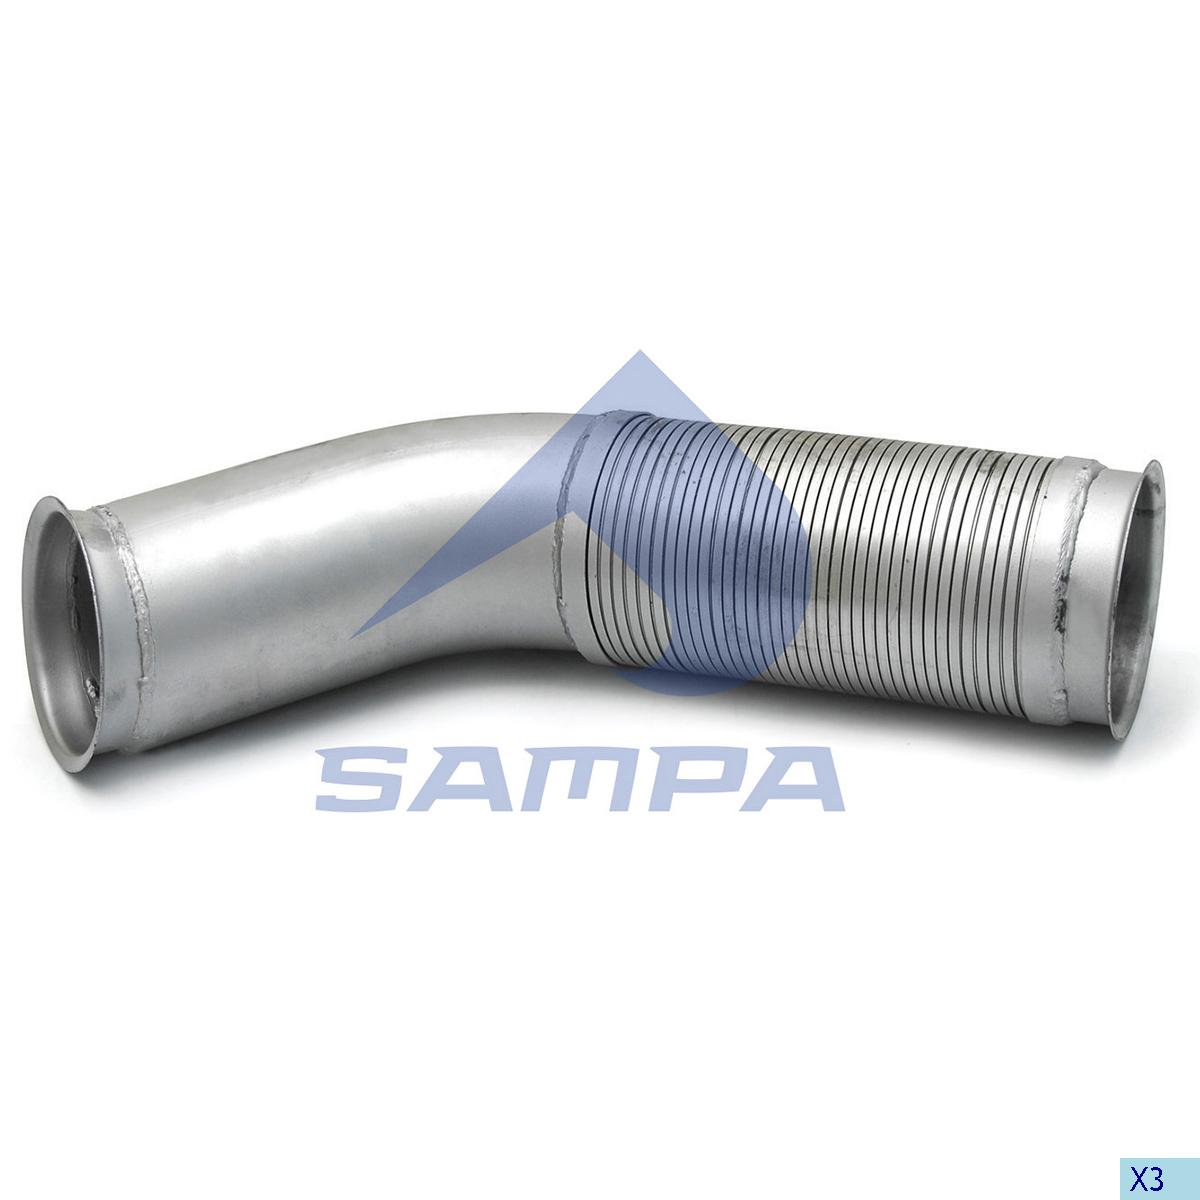 Flexible Pipe, Exhaust, Scania, Engine